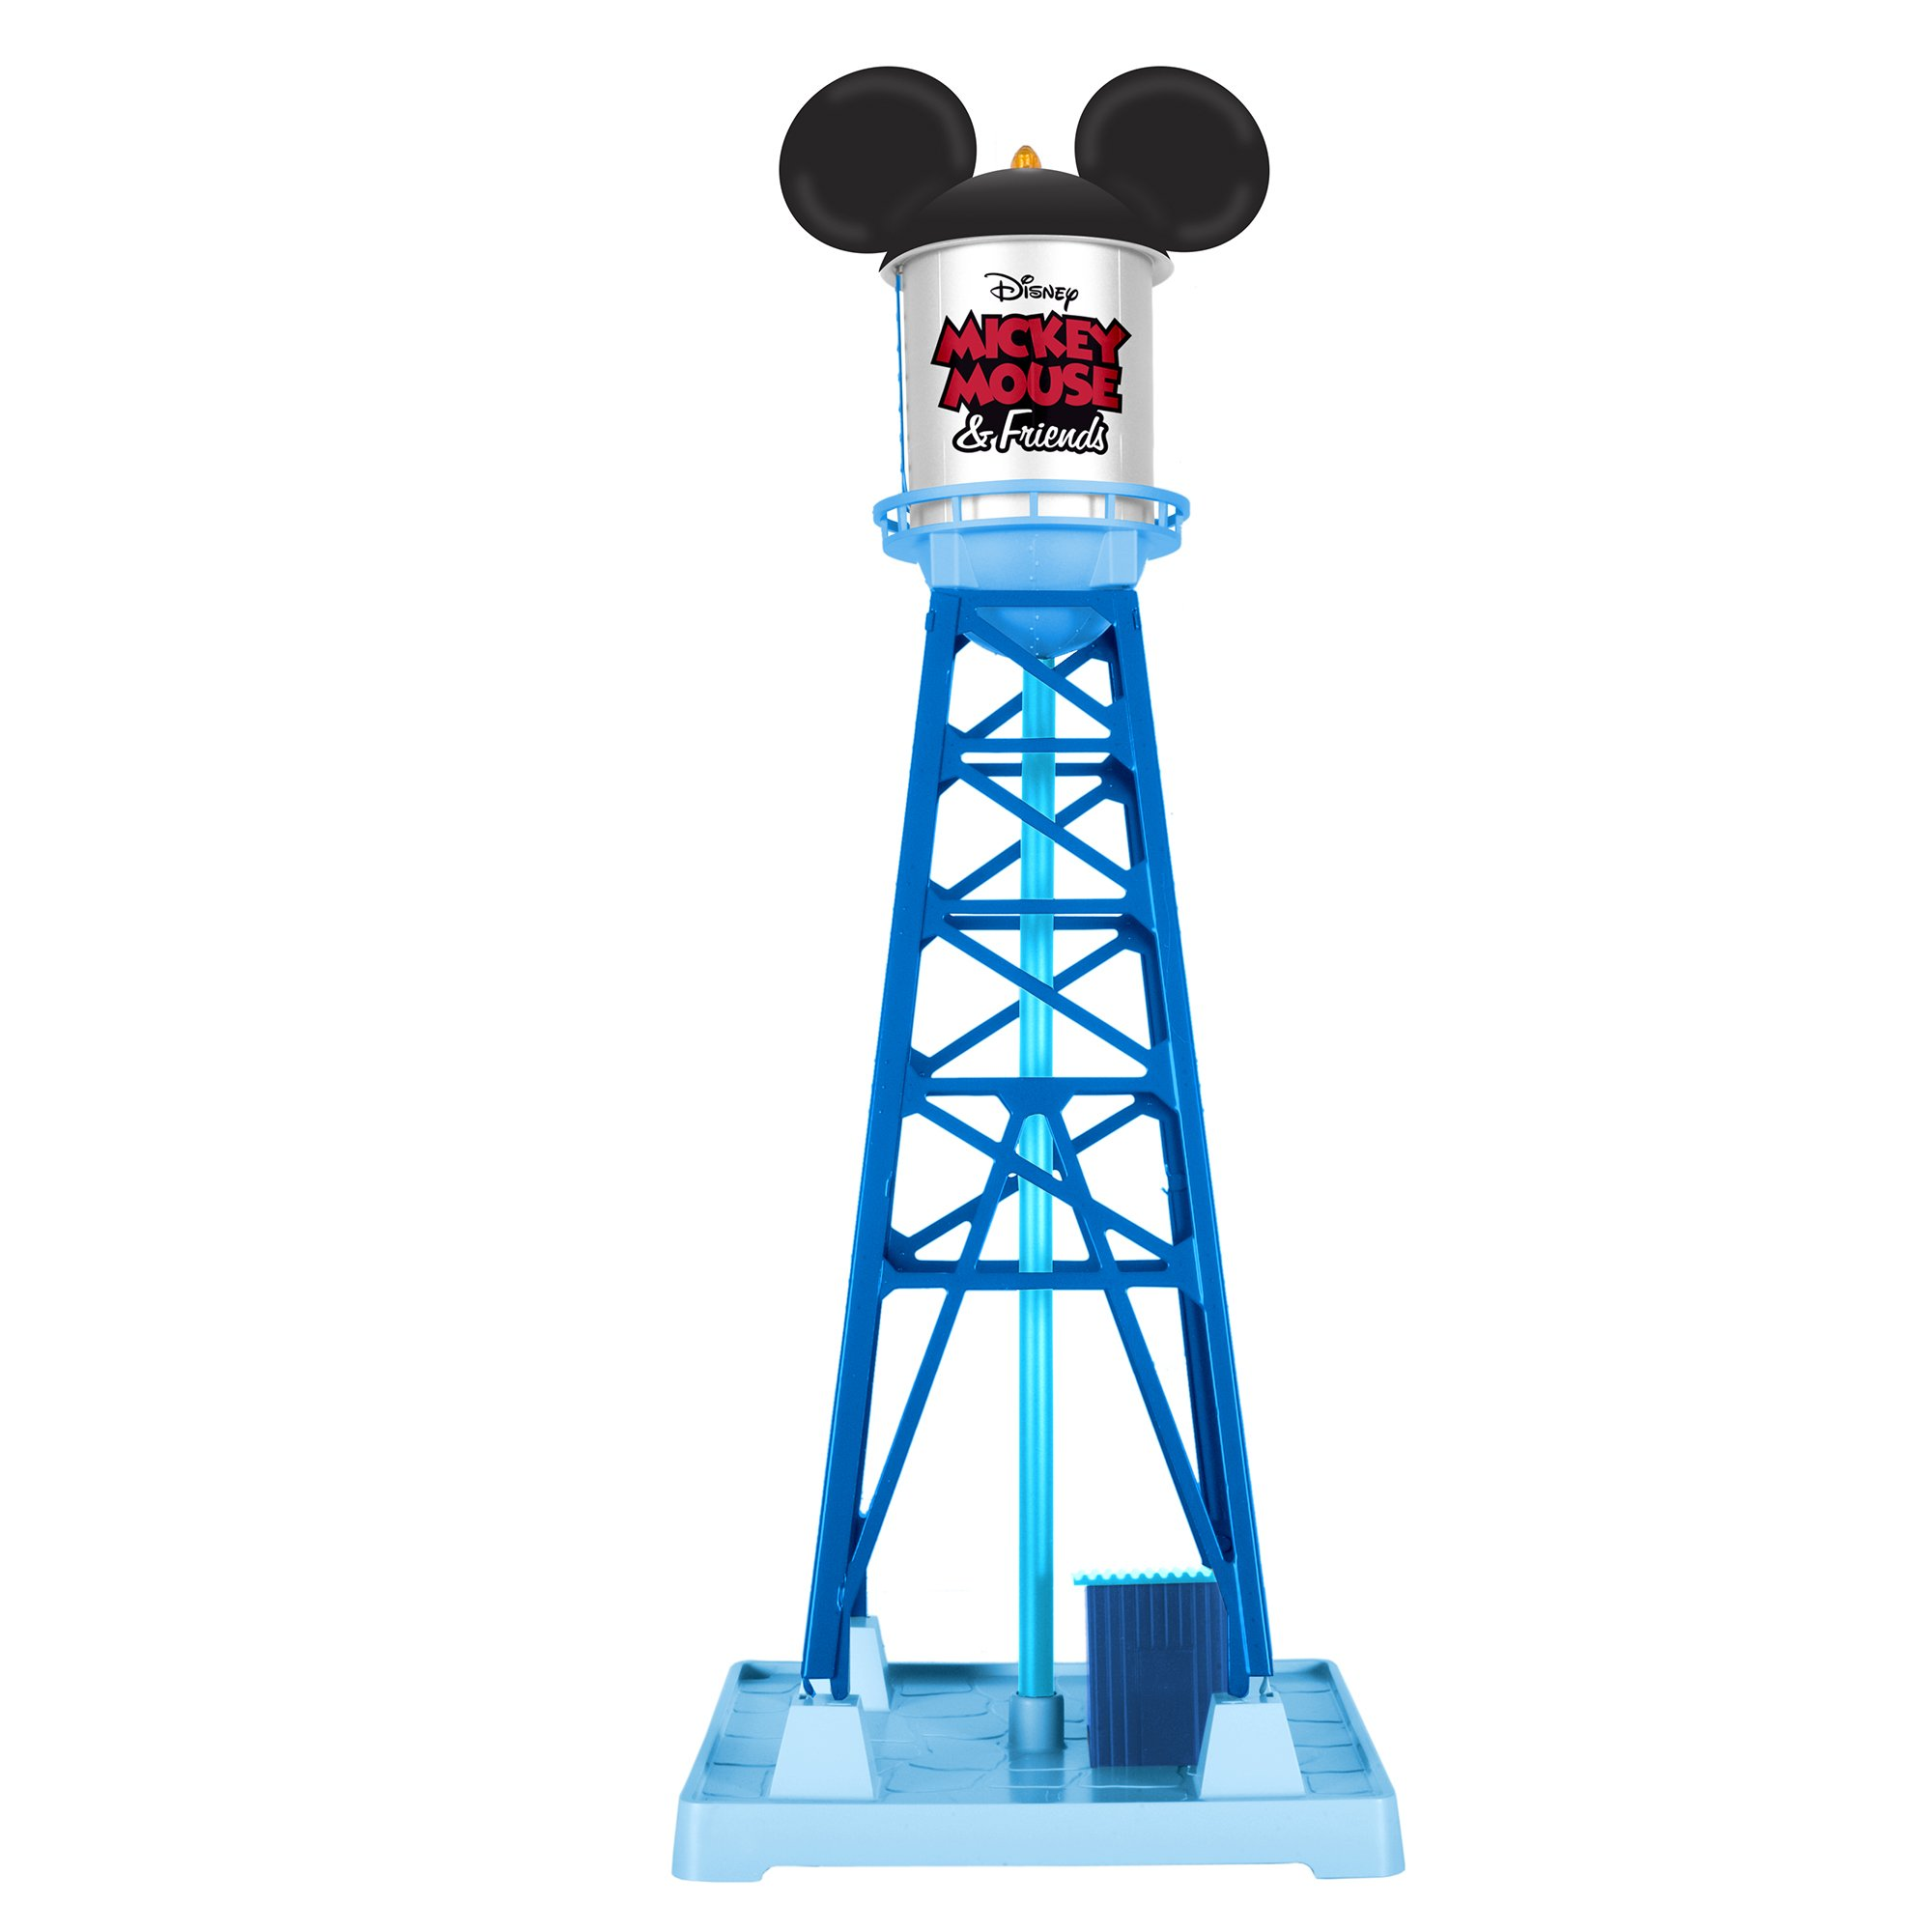 Lionel Disney Mickey Mouse & Friends, Electric O Gauge Model Train Accessories, Industrial Water Tower